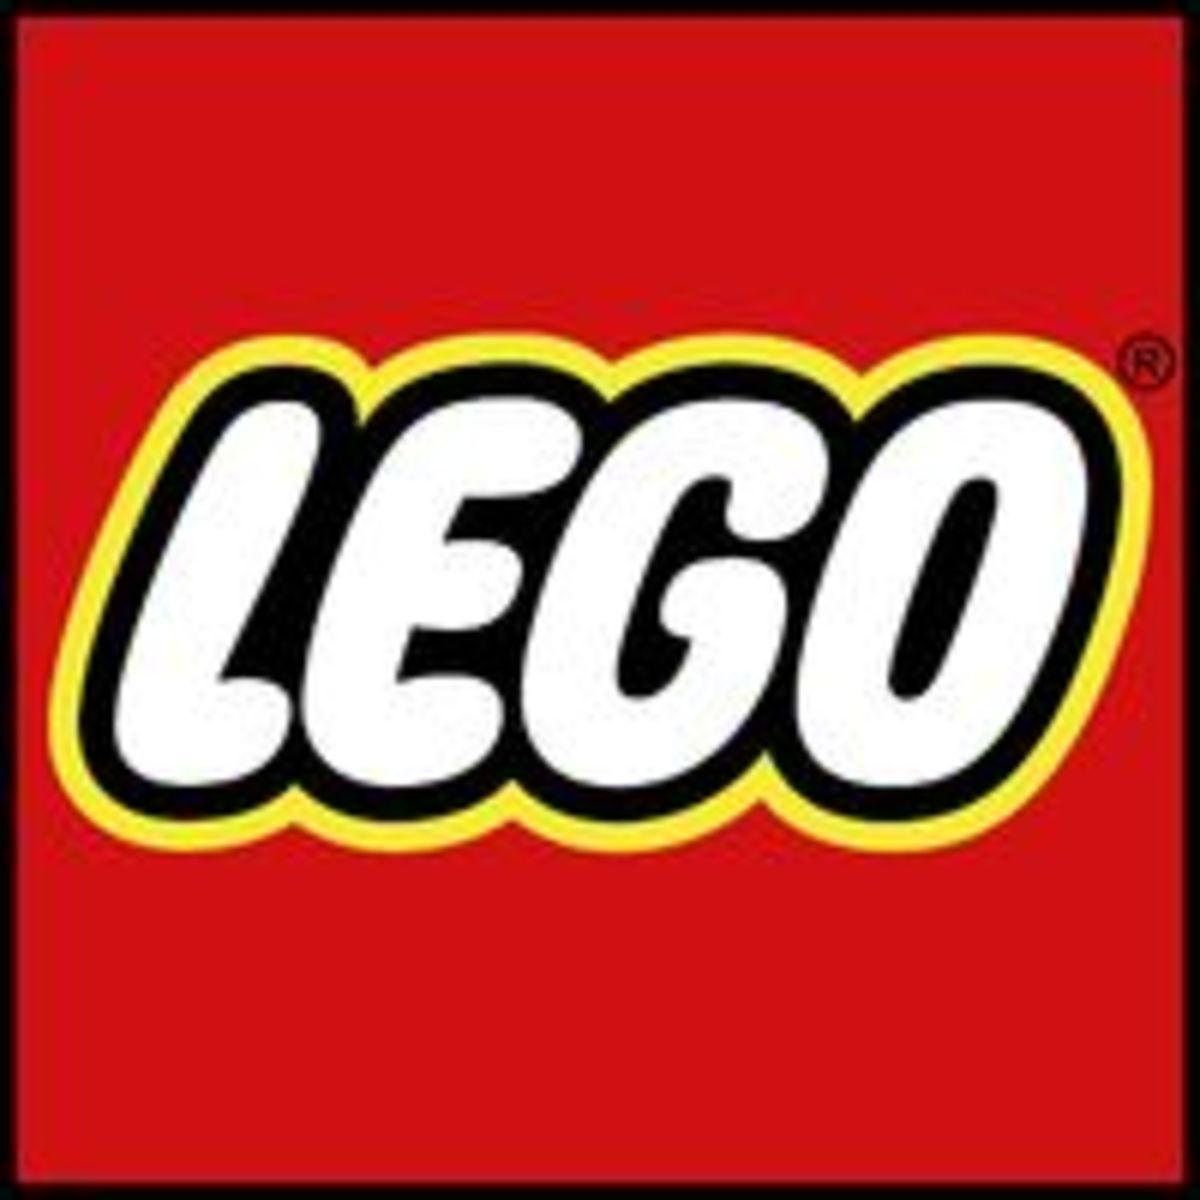 The current logo for all LEGO sets.